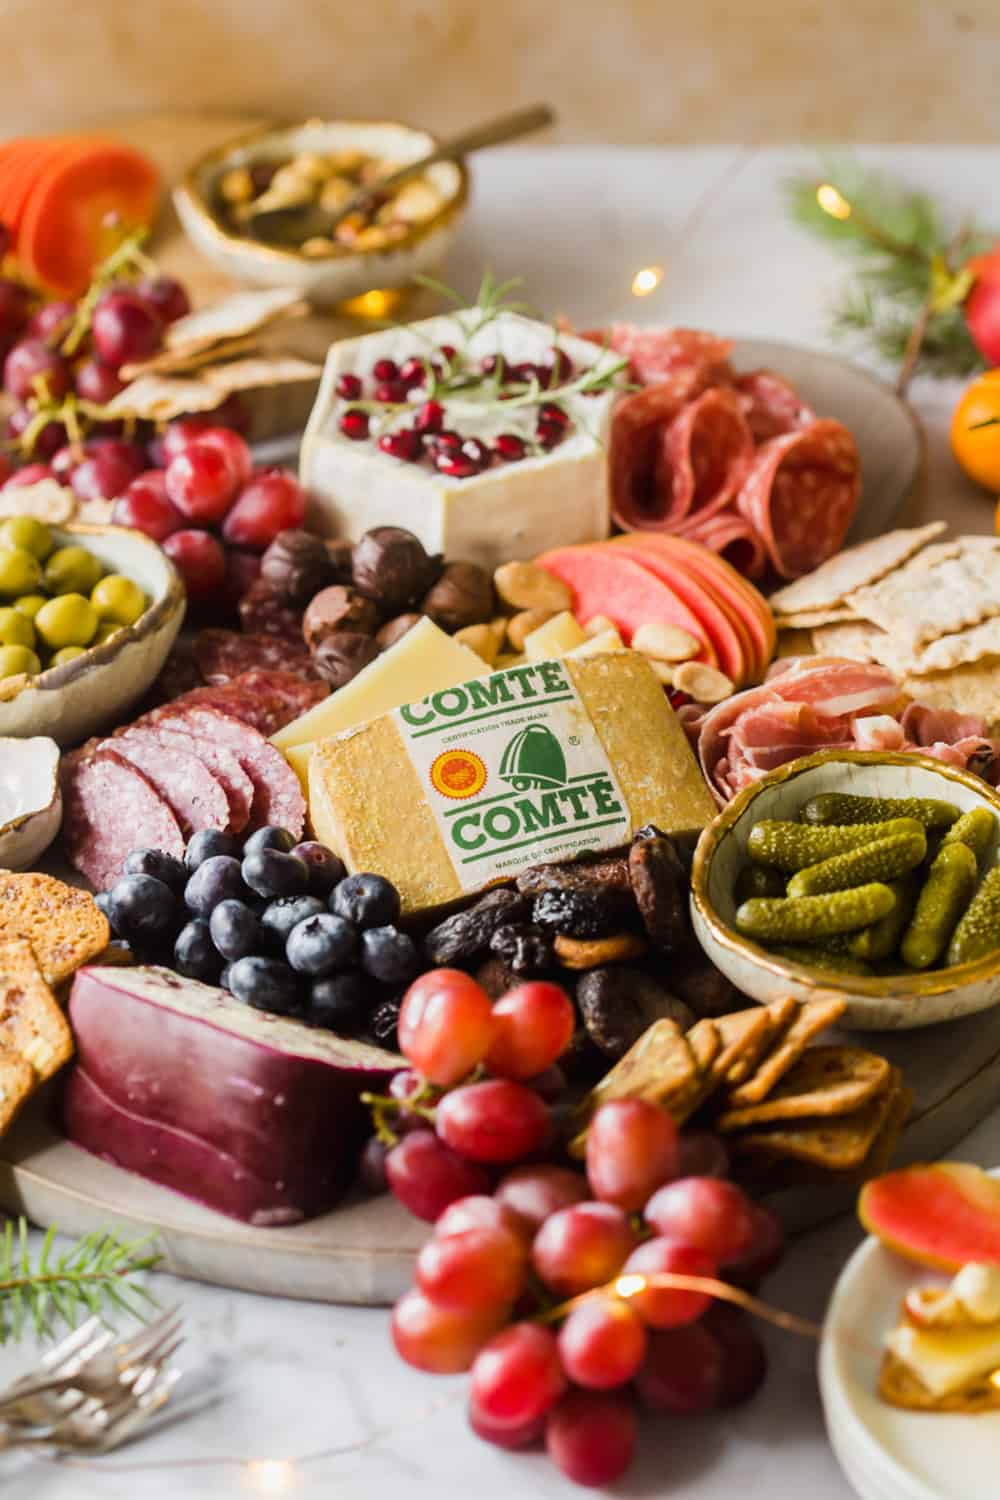 Close up of a large platter with lots of meats, cheeses, fruits, pickles, and crackers.